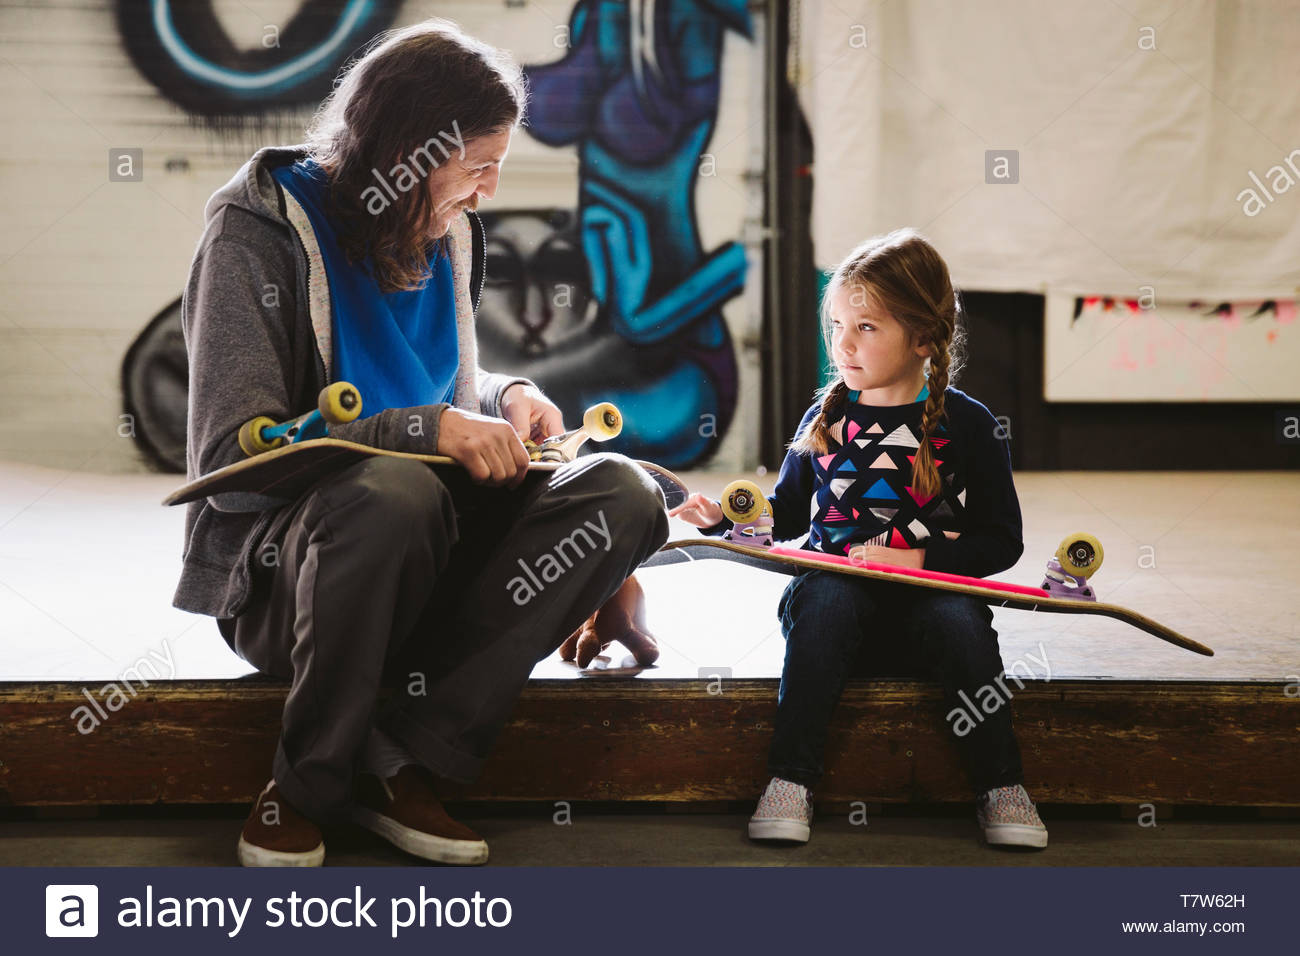 Father and daughter at indoor skate park - Stock Image